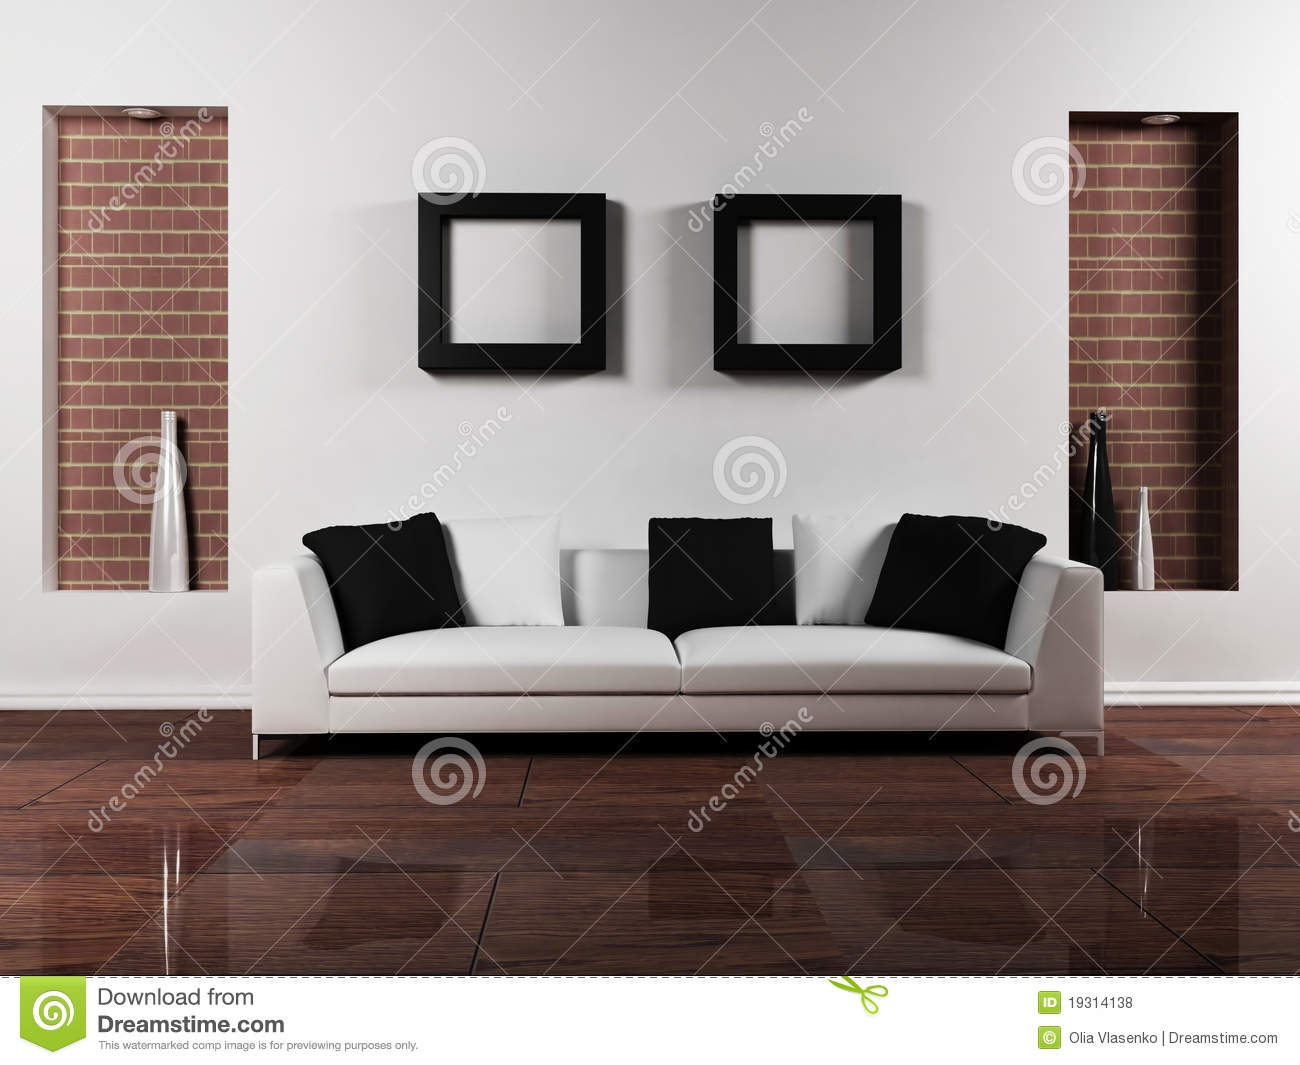 Modern interior design of living room stock illustration for New design interior living room